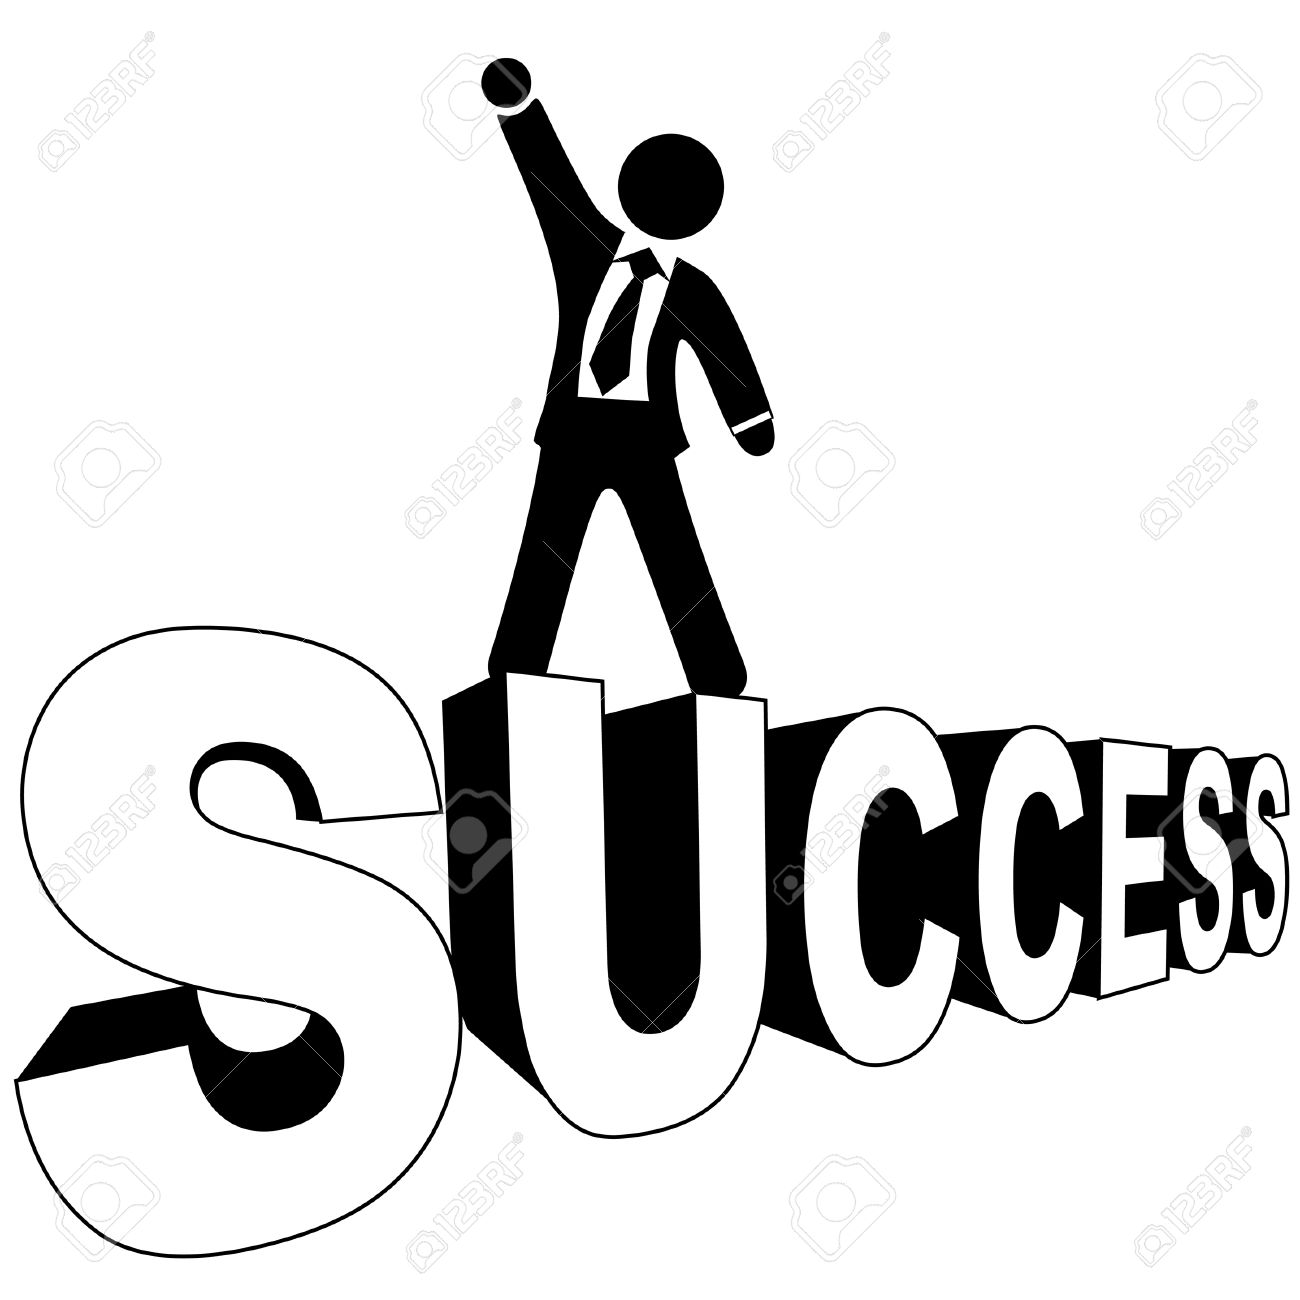 Successful business man in a suit and ties stands on his SUCCESS, in black and white.Large JPG included. Stock Vector - 3915813